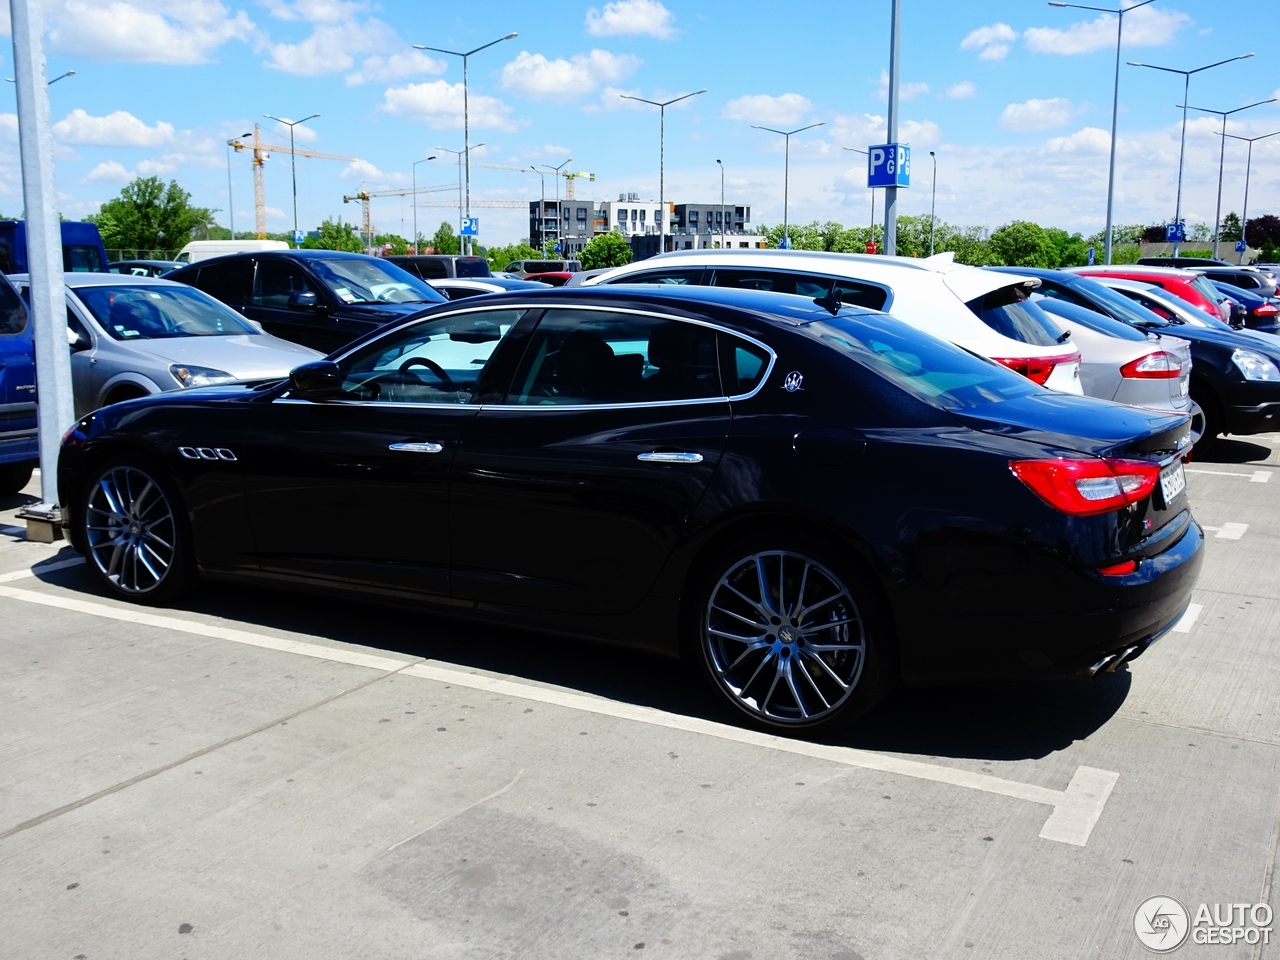 maserati quattroporte s q4 2013 8 june 2017 autogespot. Black Bedroom Furniture Sets. Home Design Ideas